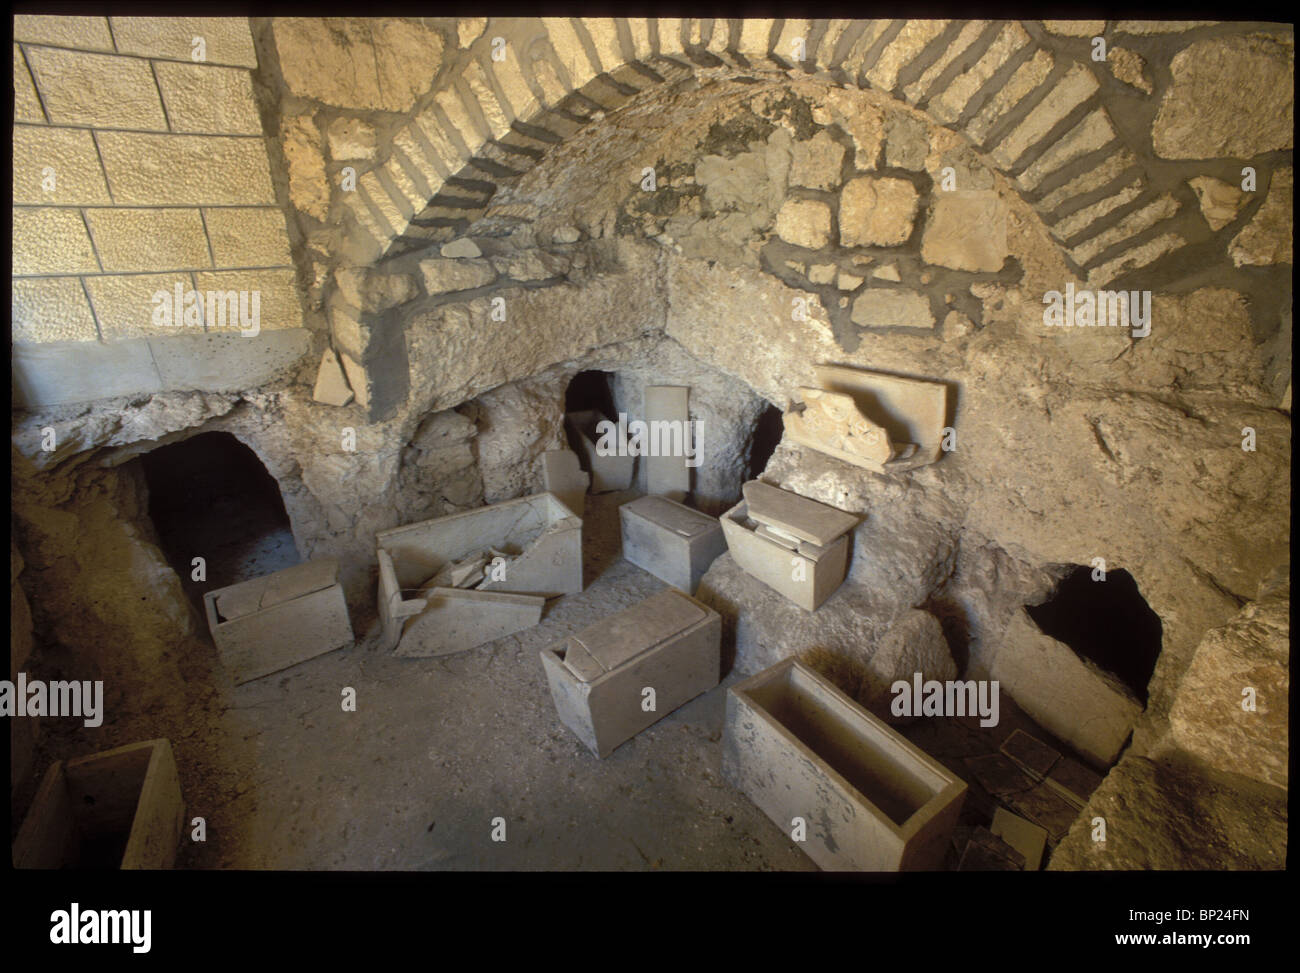 552. ROMAN PERIOD BURIAL CAVES WITH DECORATED OSSUARIES FOUND ON THE MT. OF OLIVES - Stock Image